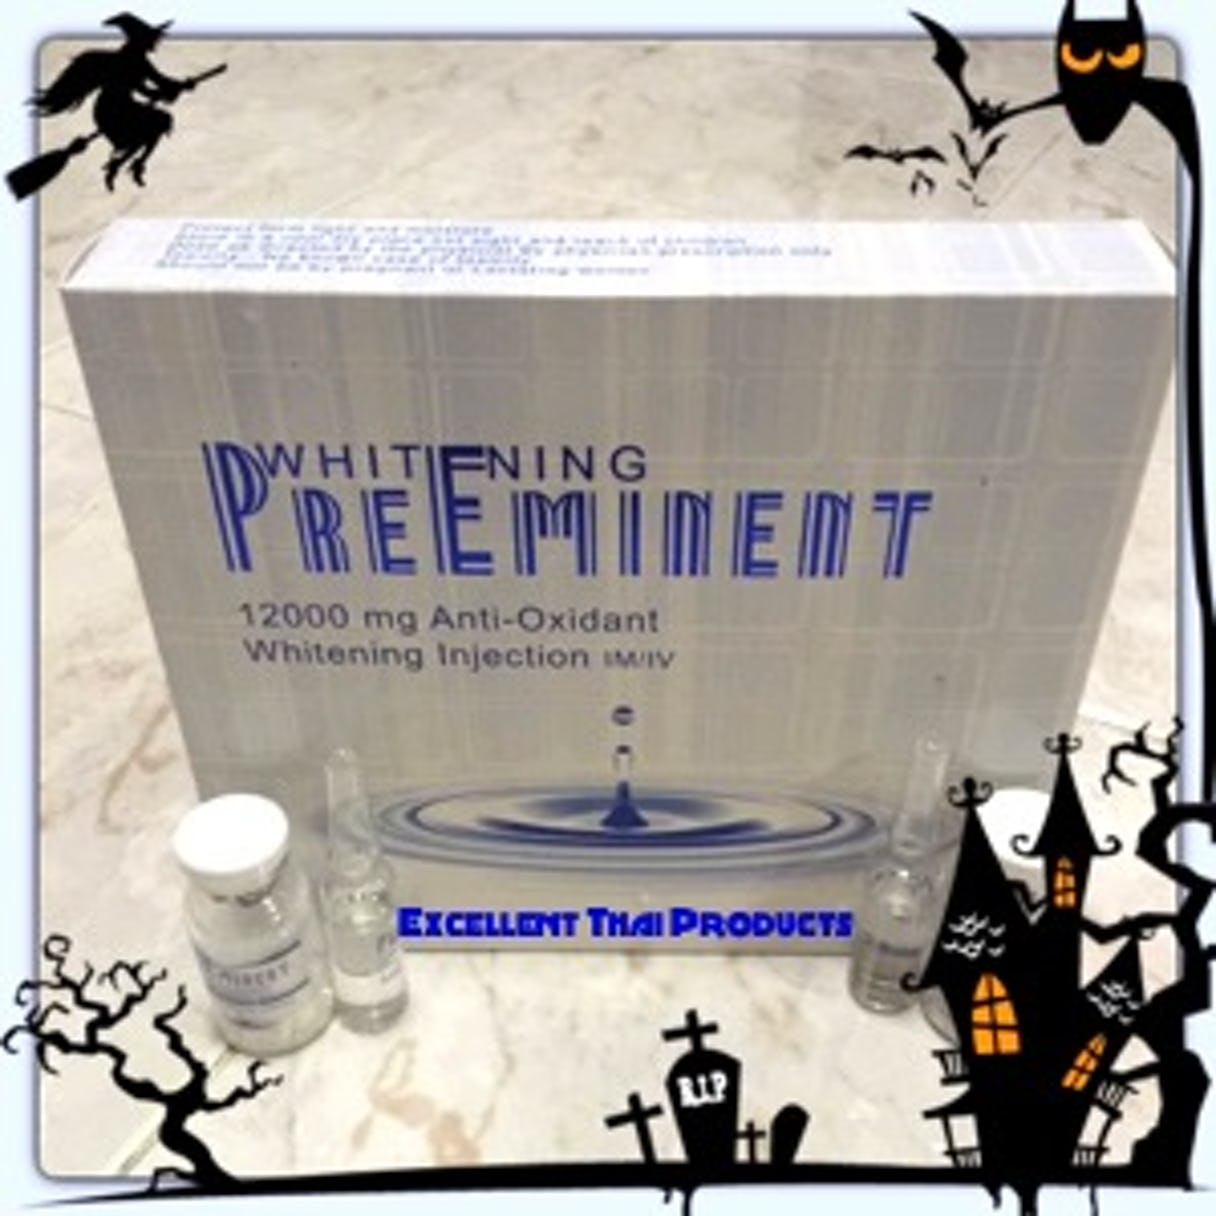 PreEminent 12000MG. ANTI-OXIDANT WHITENING INJECTION (USA)